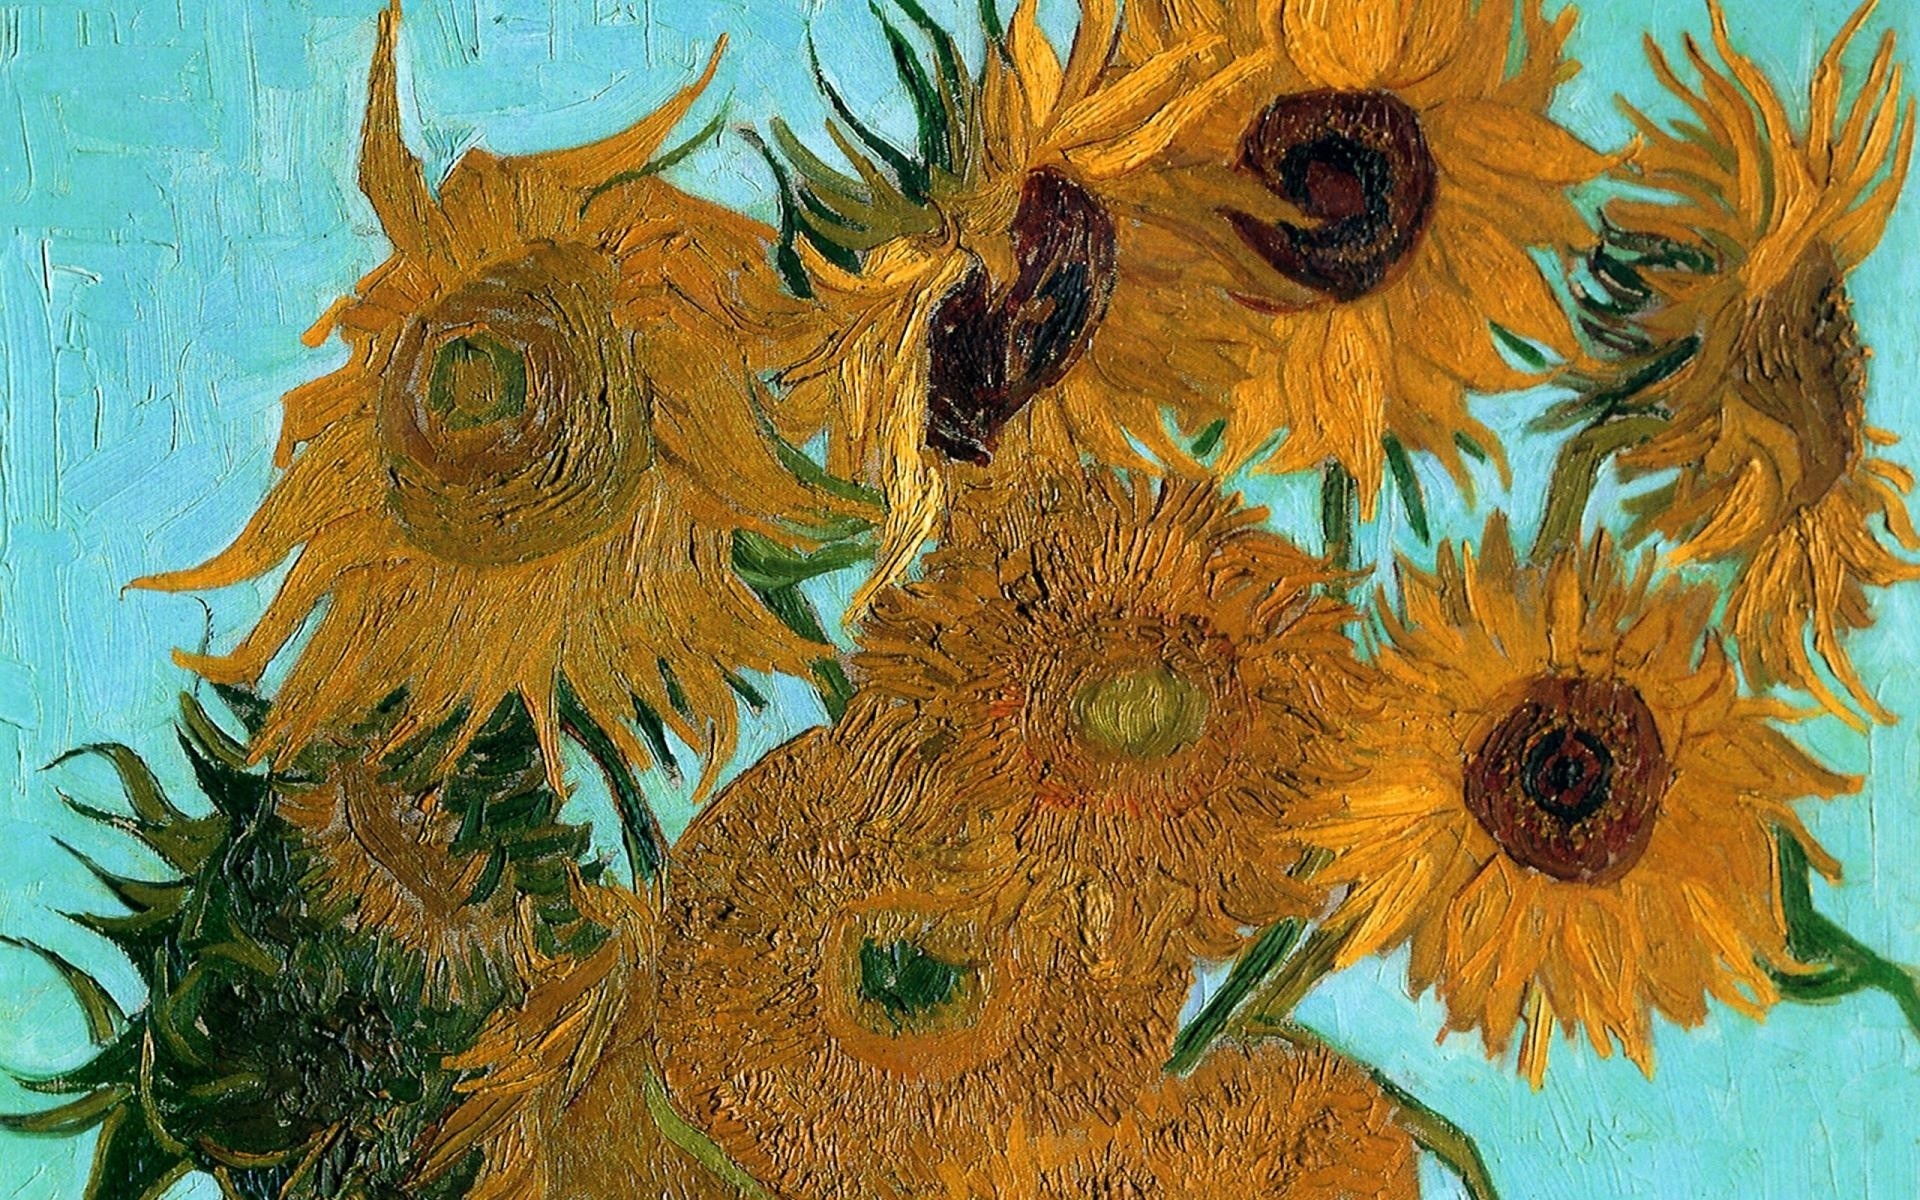 van gogh desktop wallpaper (51+ images)